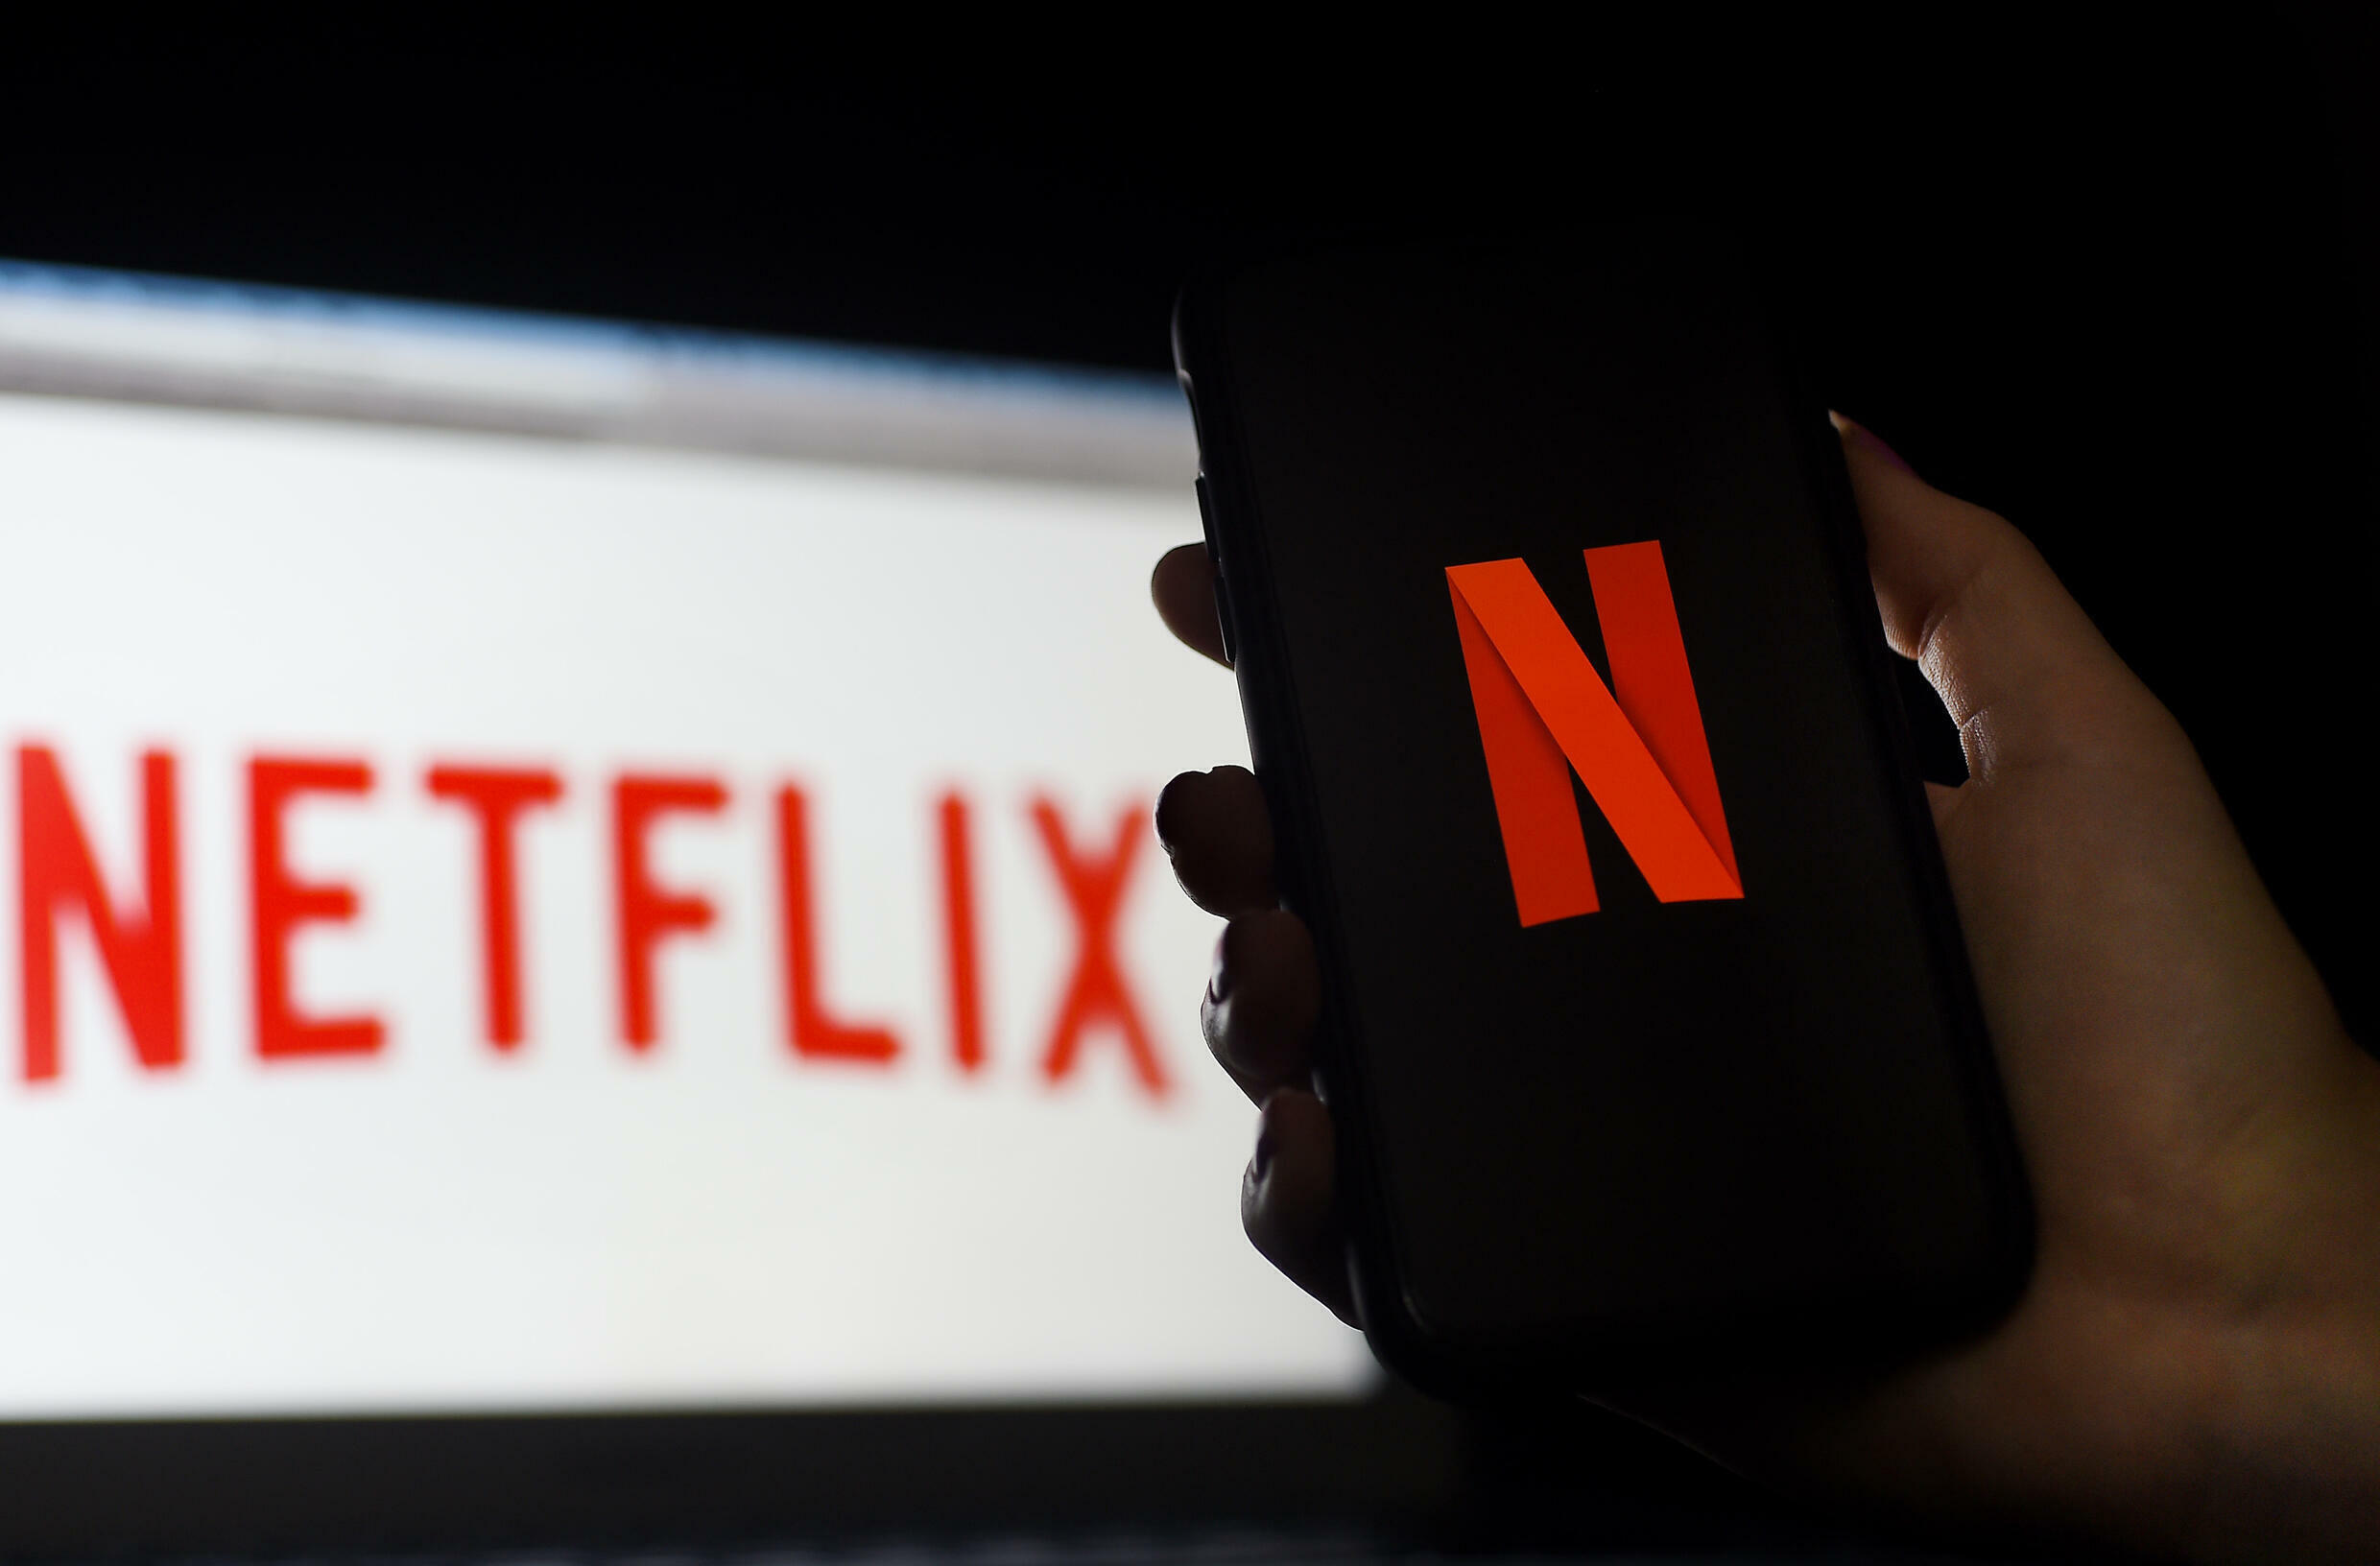 Netflix is banking on mobile games to keep subscriber interest as it reaches a saturation point for streaming television viewers